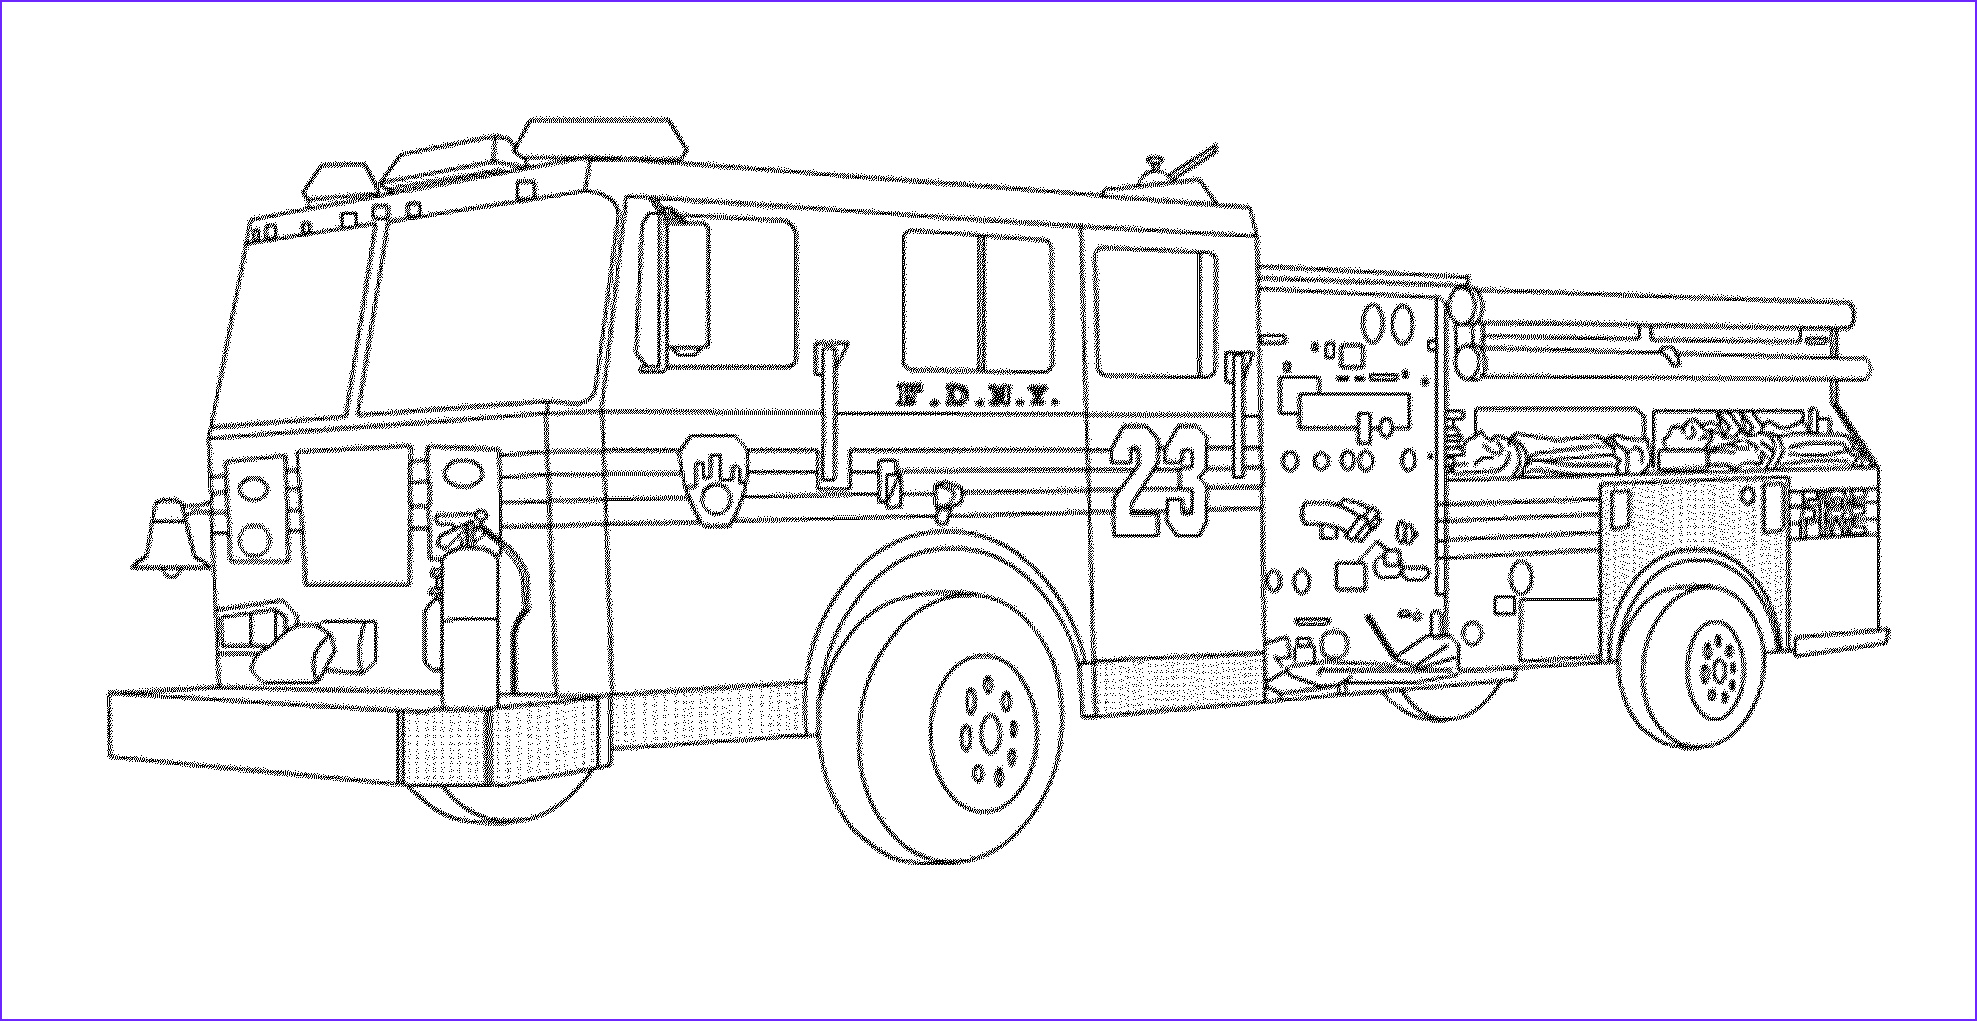 Fire Truck Coloring Pages Elegant Image Print & Download Educational Fire Truck Coloring Pages